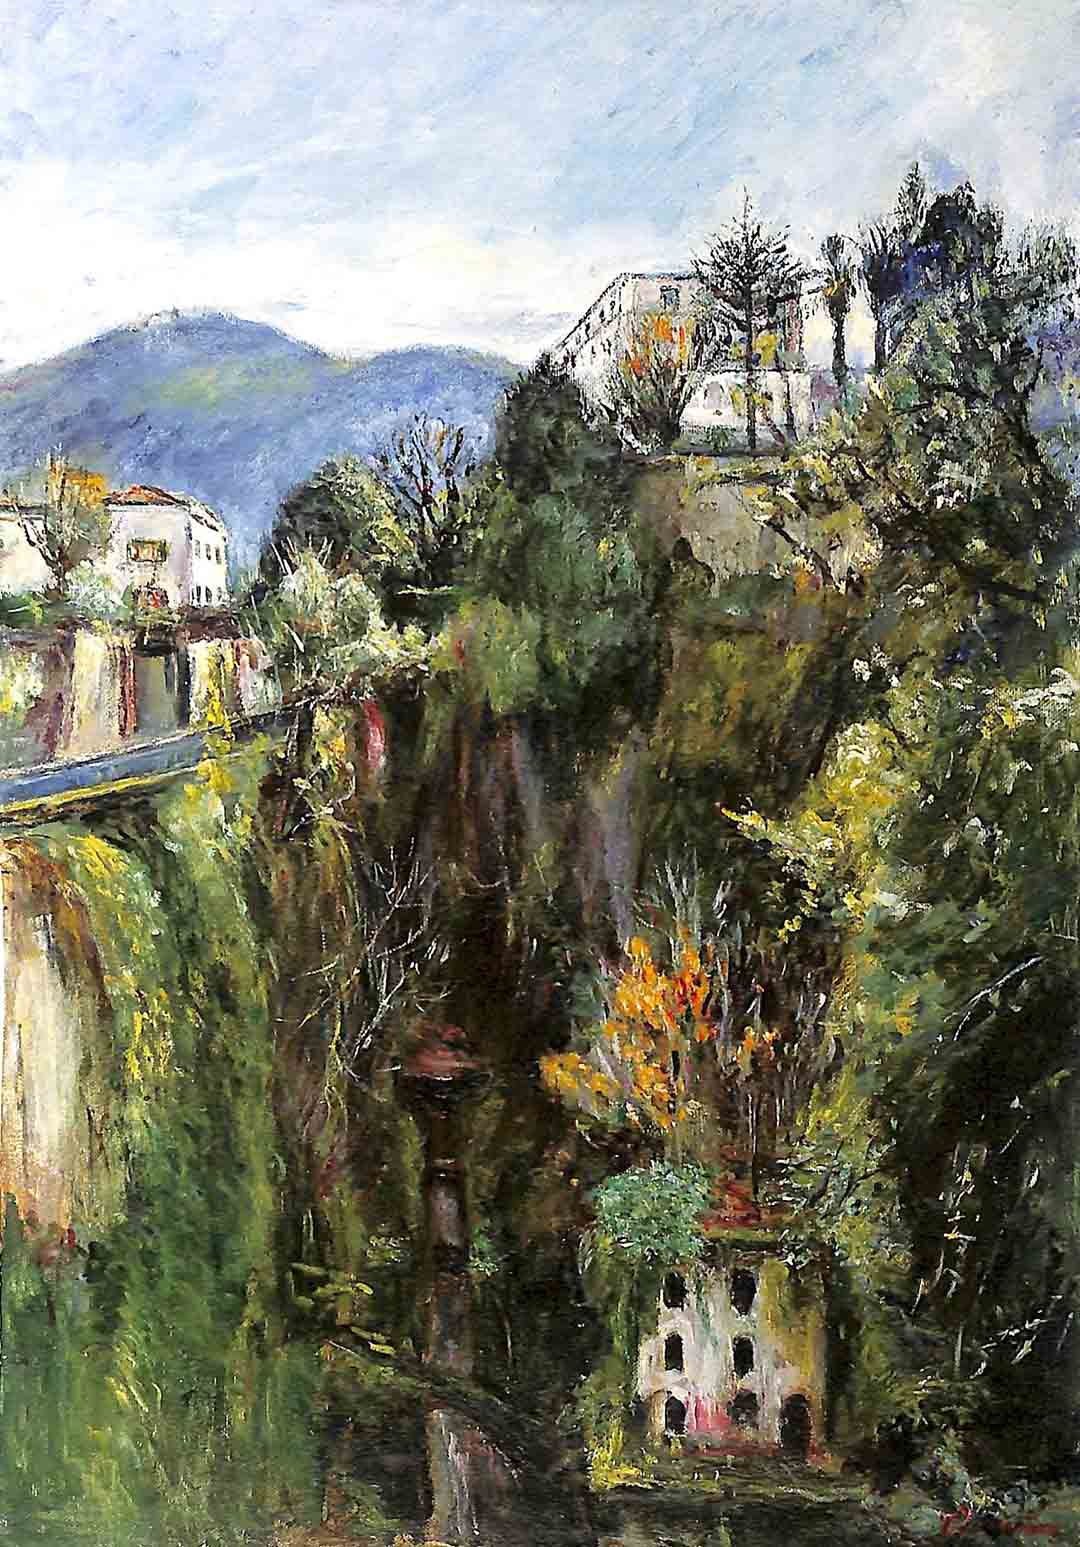 Domenico FIORENTINO (Sorrento 1923-2012), Valley of the Mills, 2000